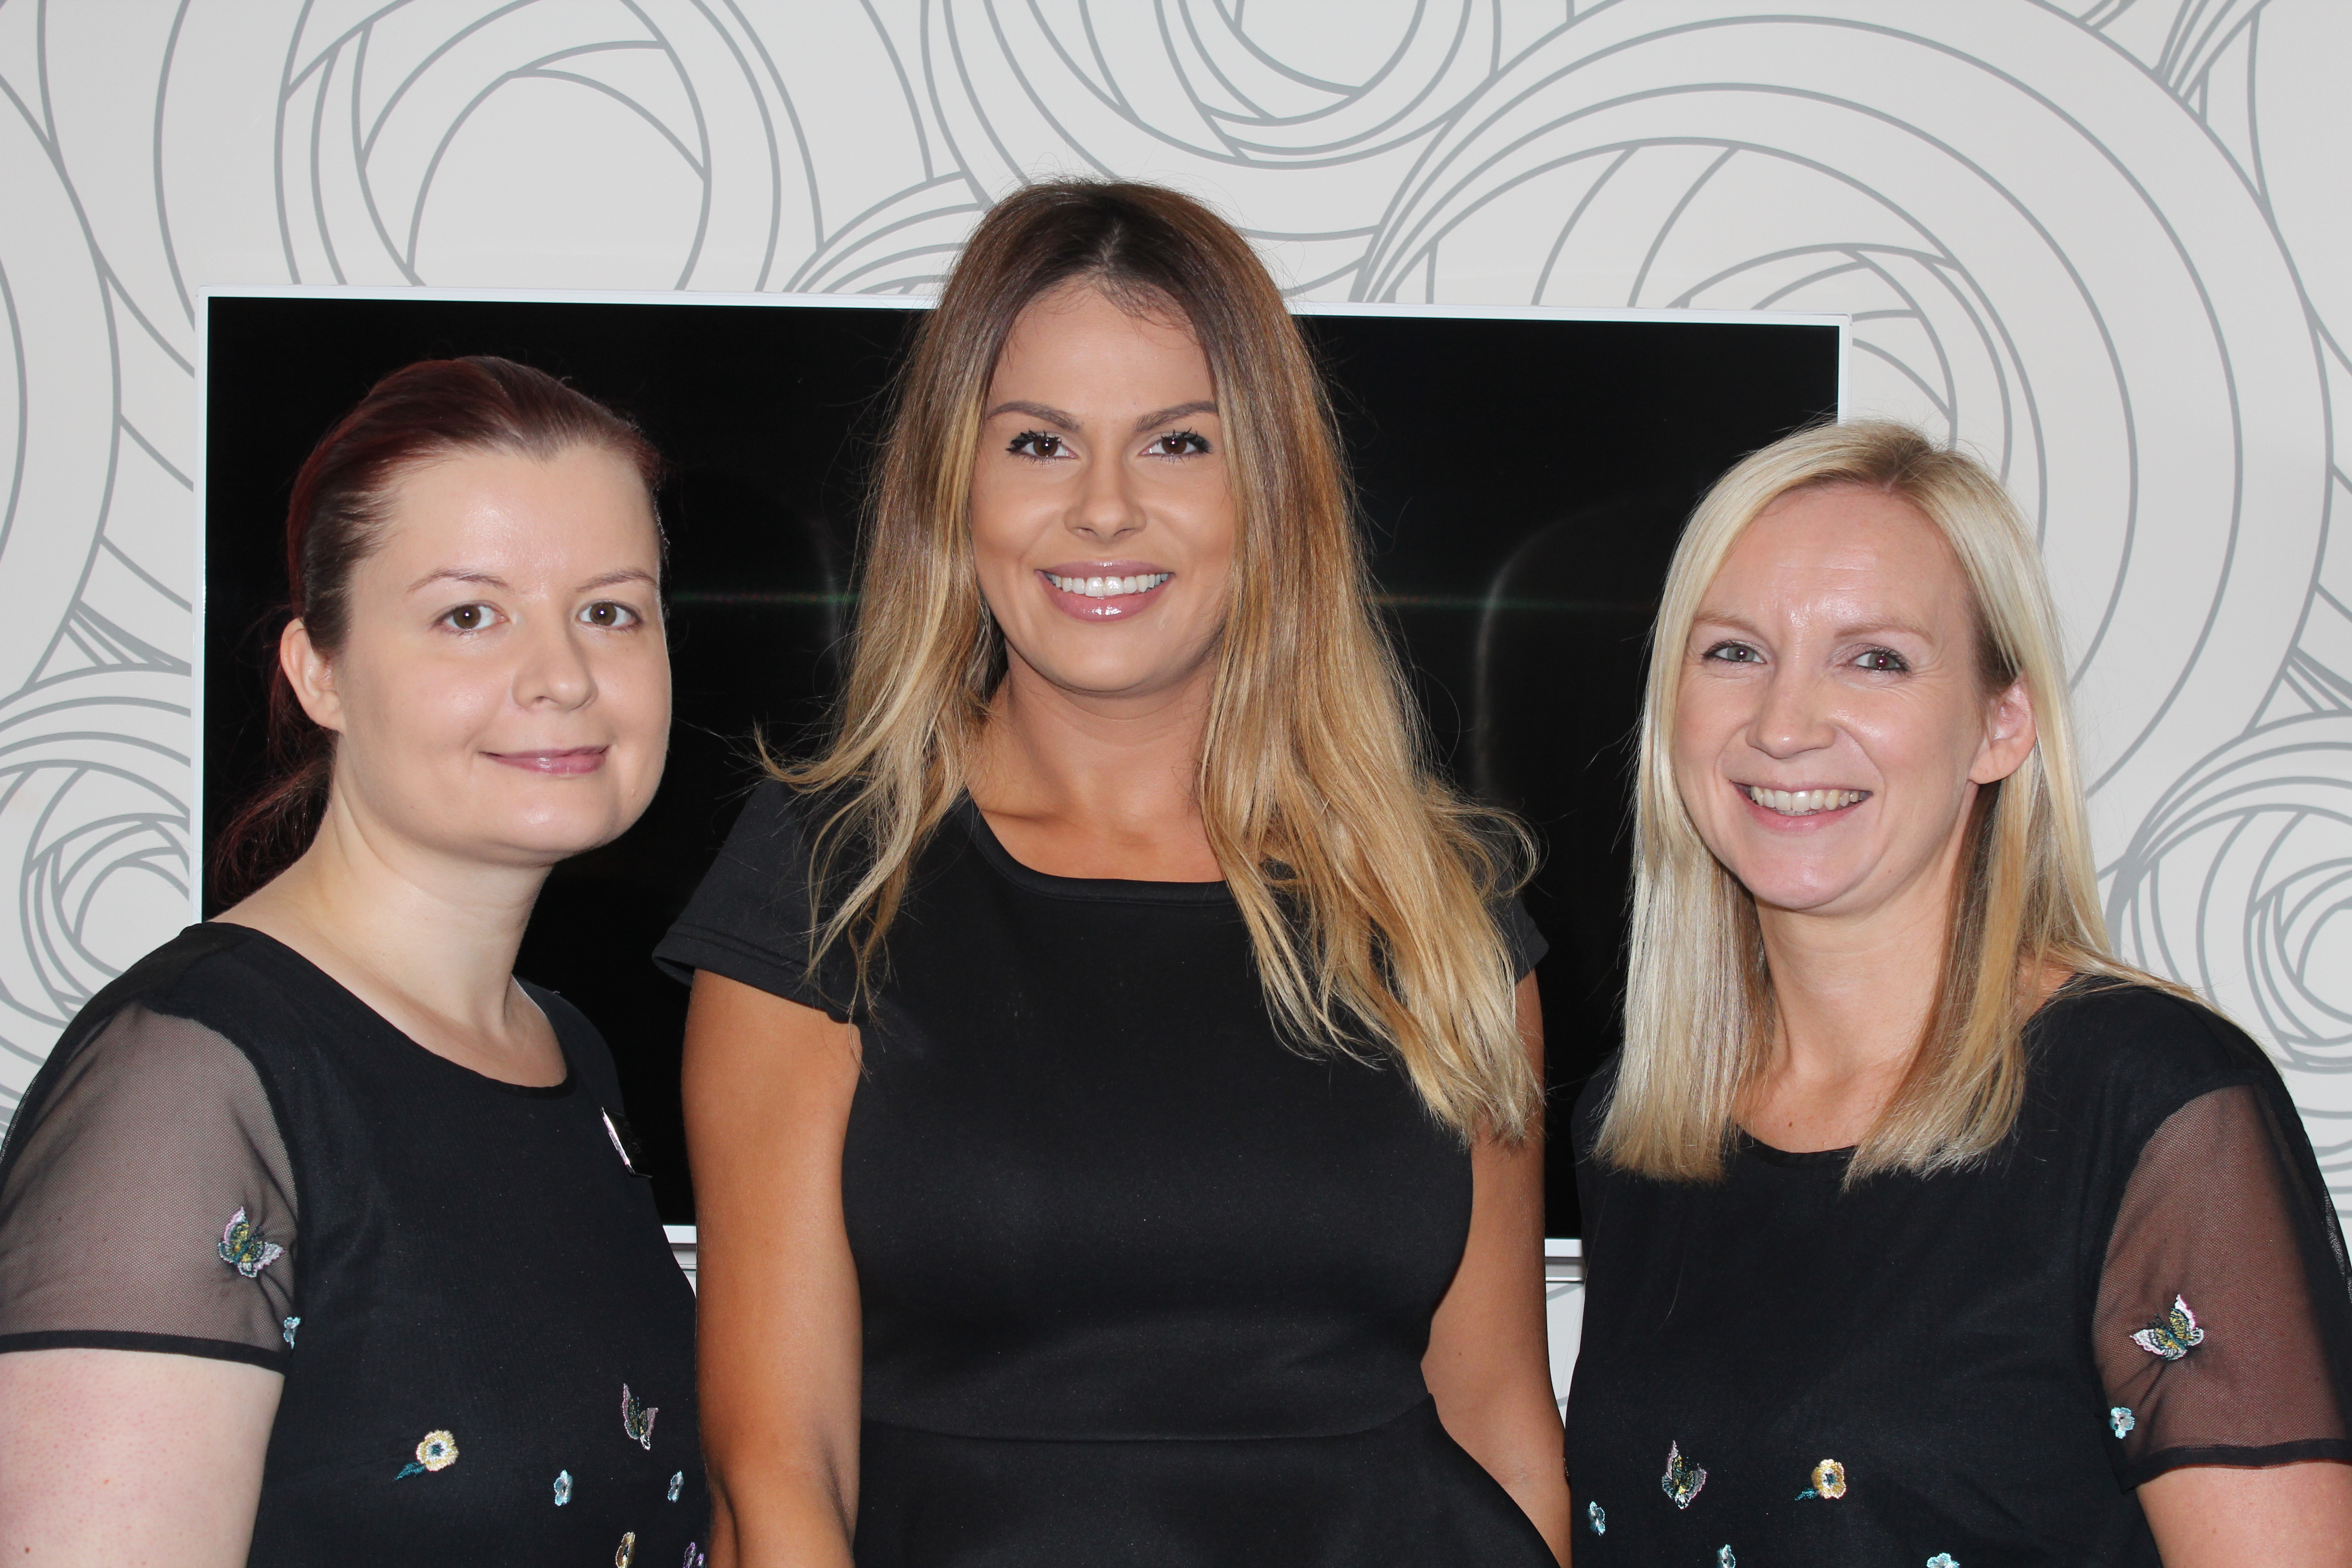 Media release: Aberdeen aesthetic clinic most nominated in aesthetics awards